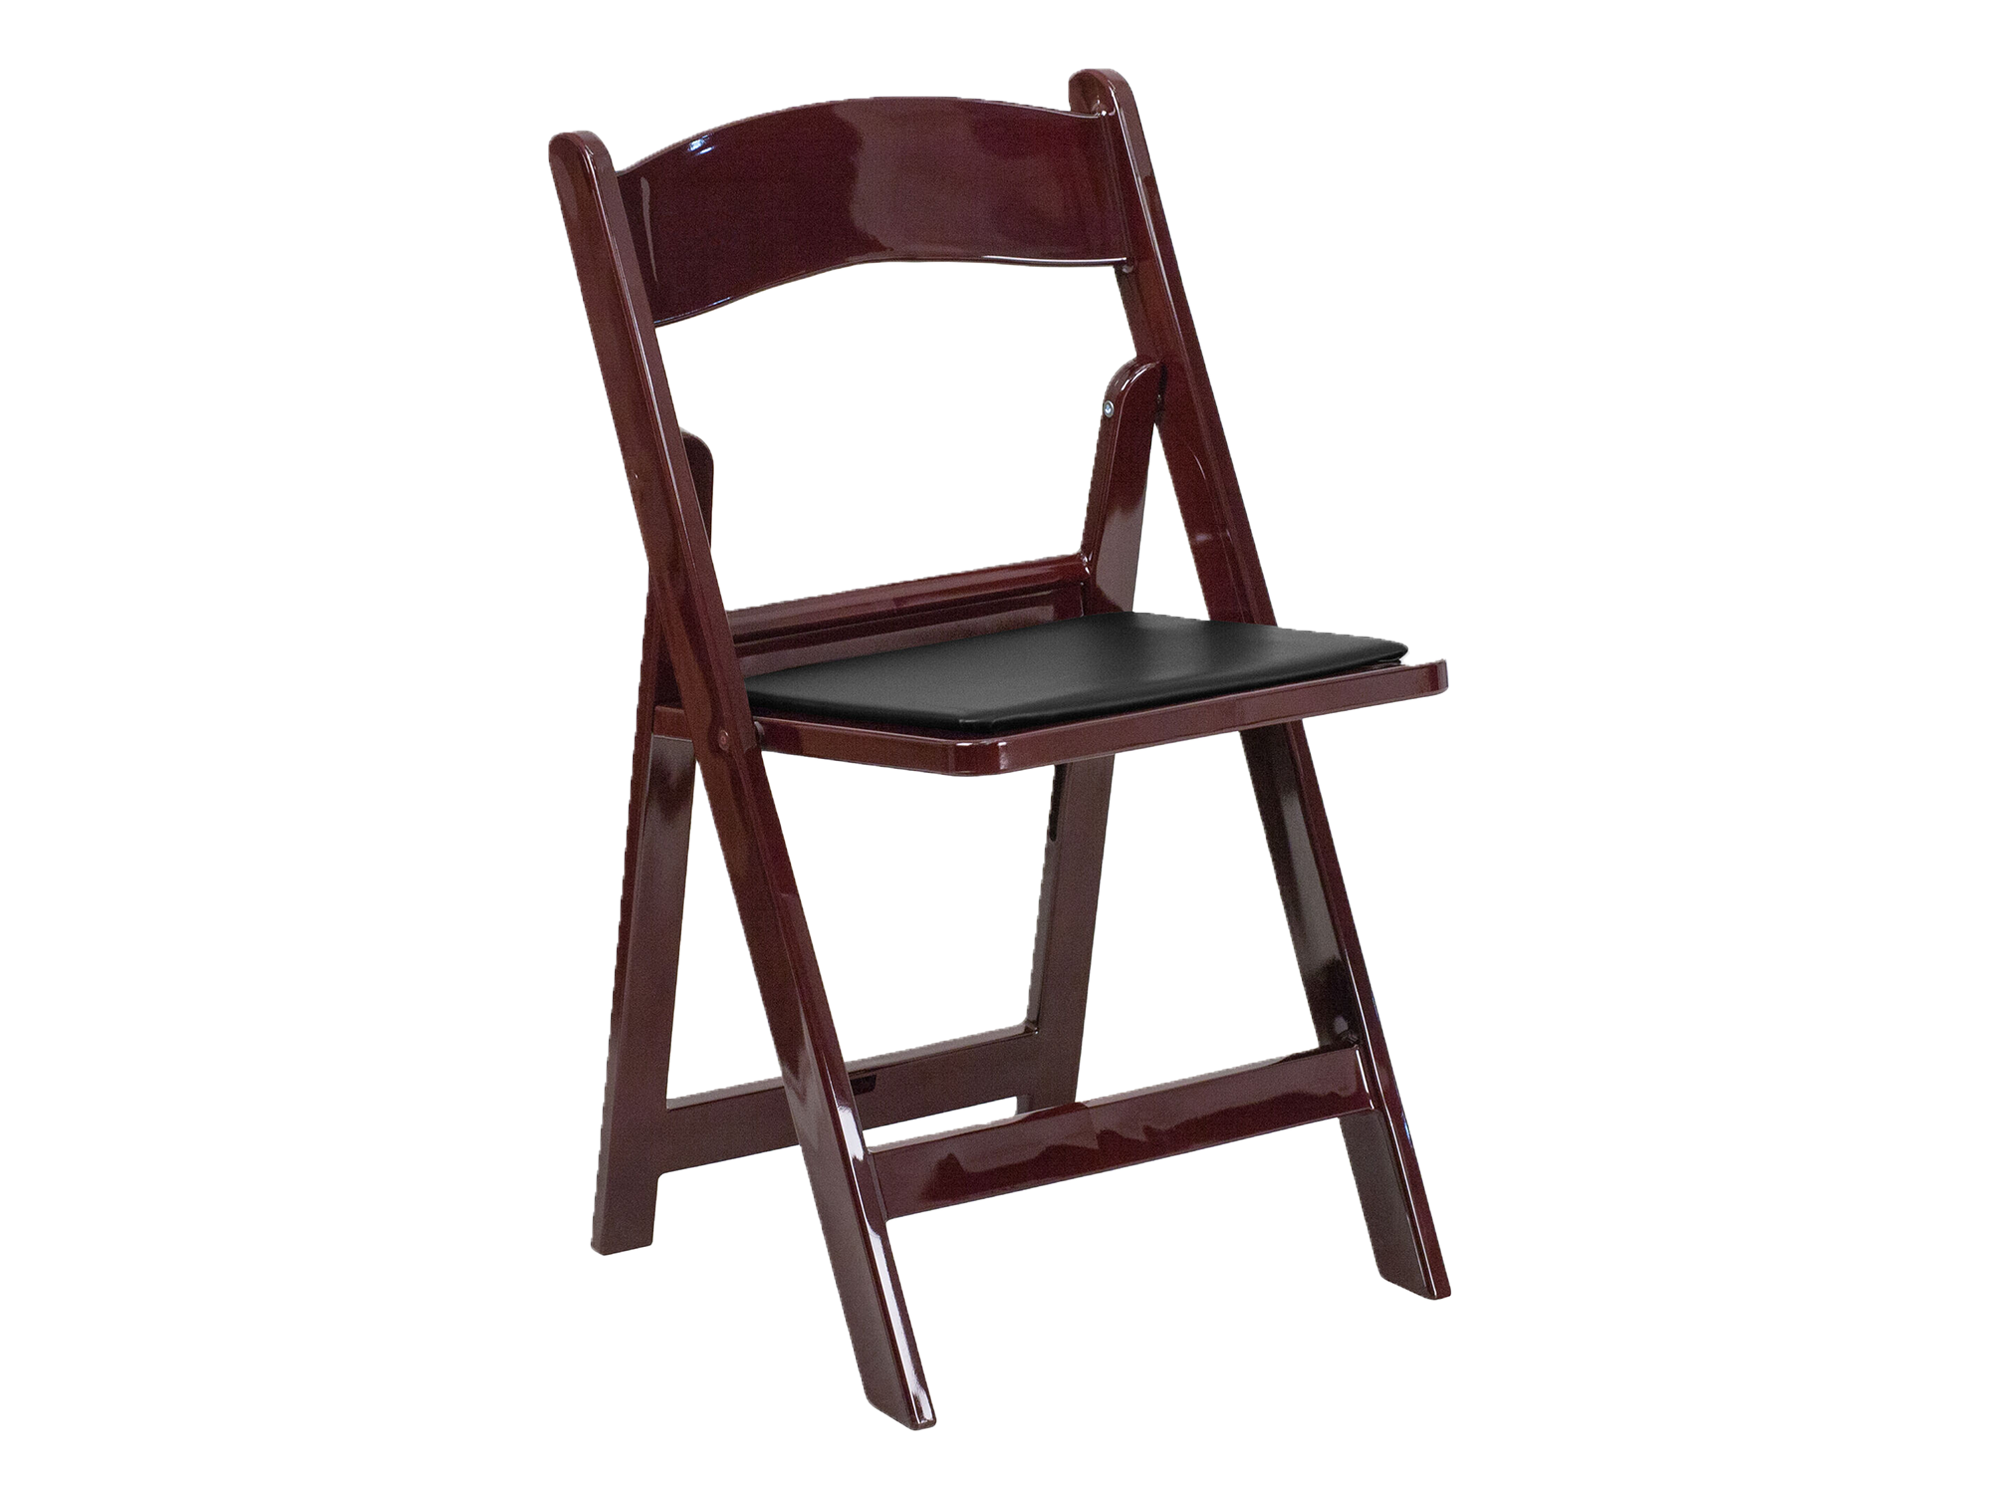 RESIN PADDED FOLDING CHAIR - MAHOGANY